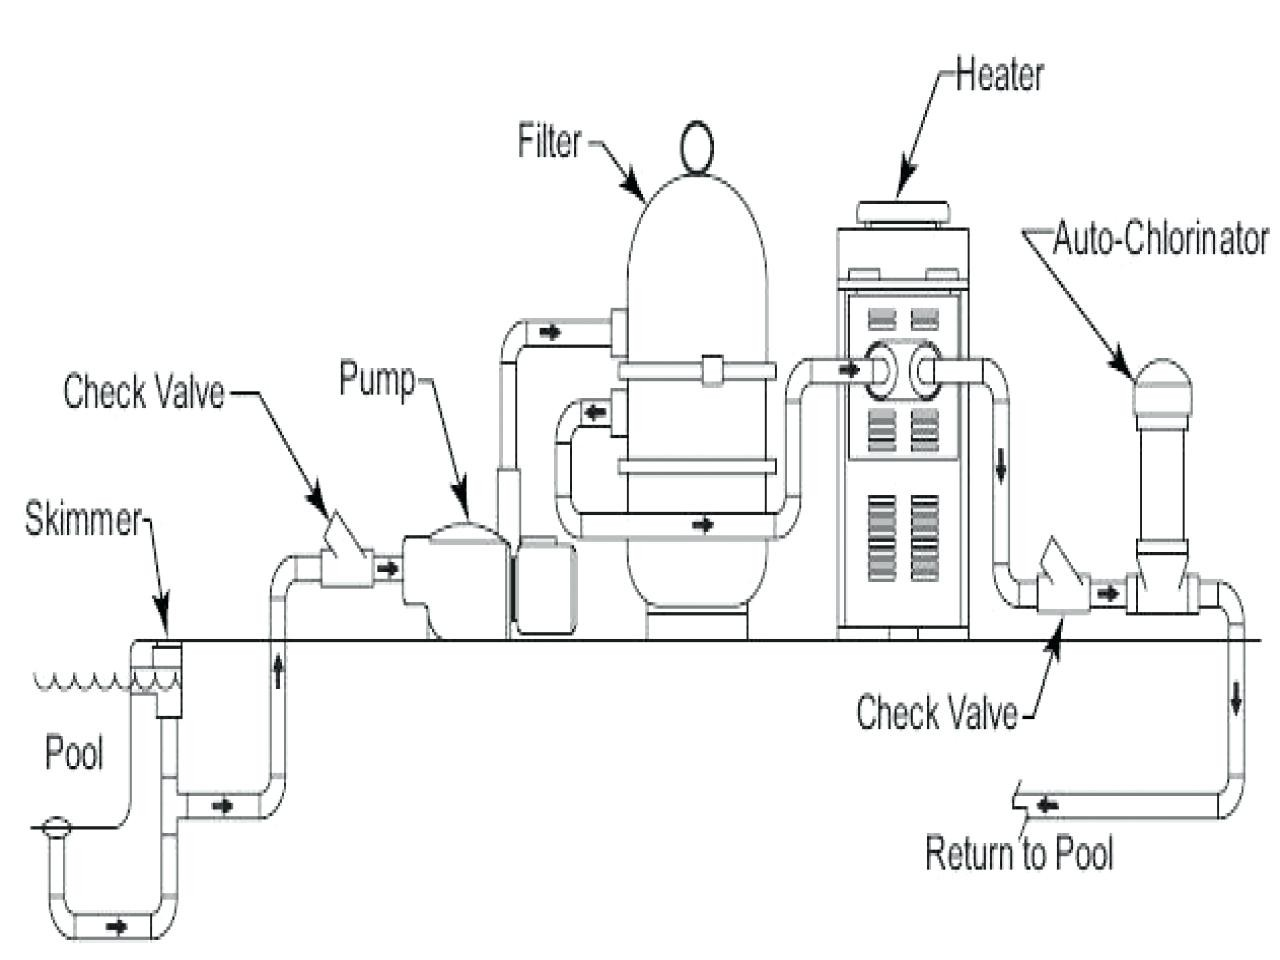 2 wire submersible pump wiring diagram